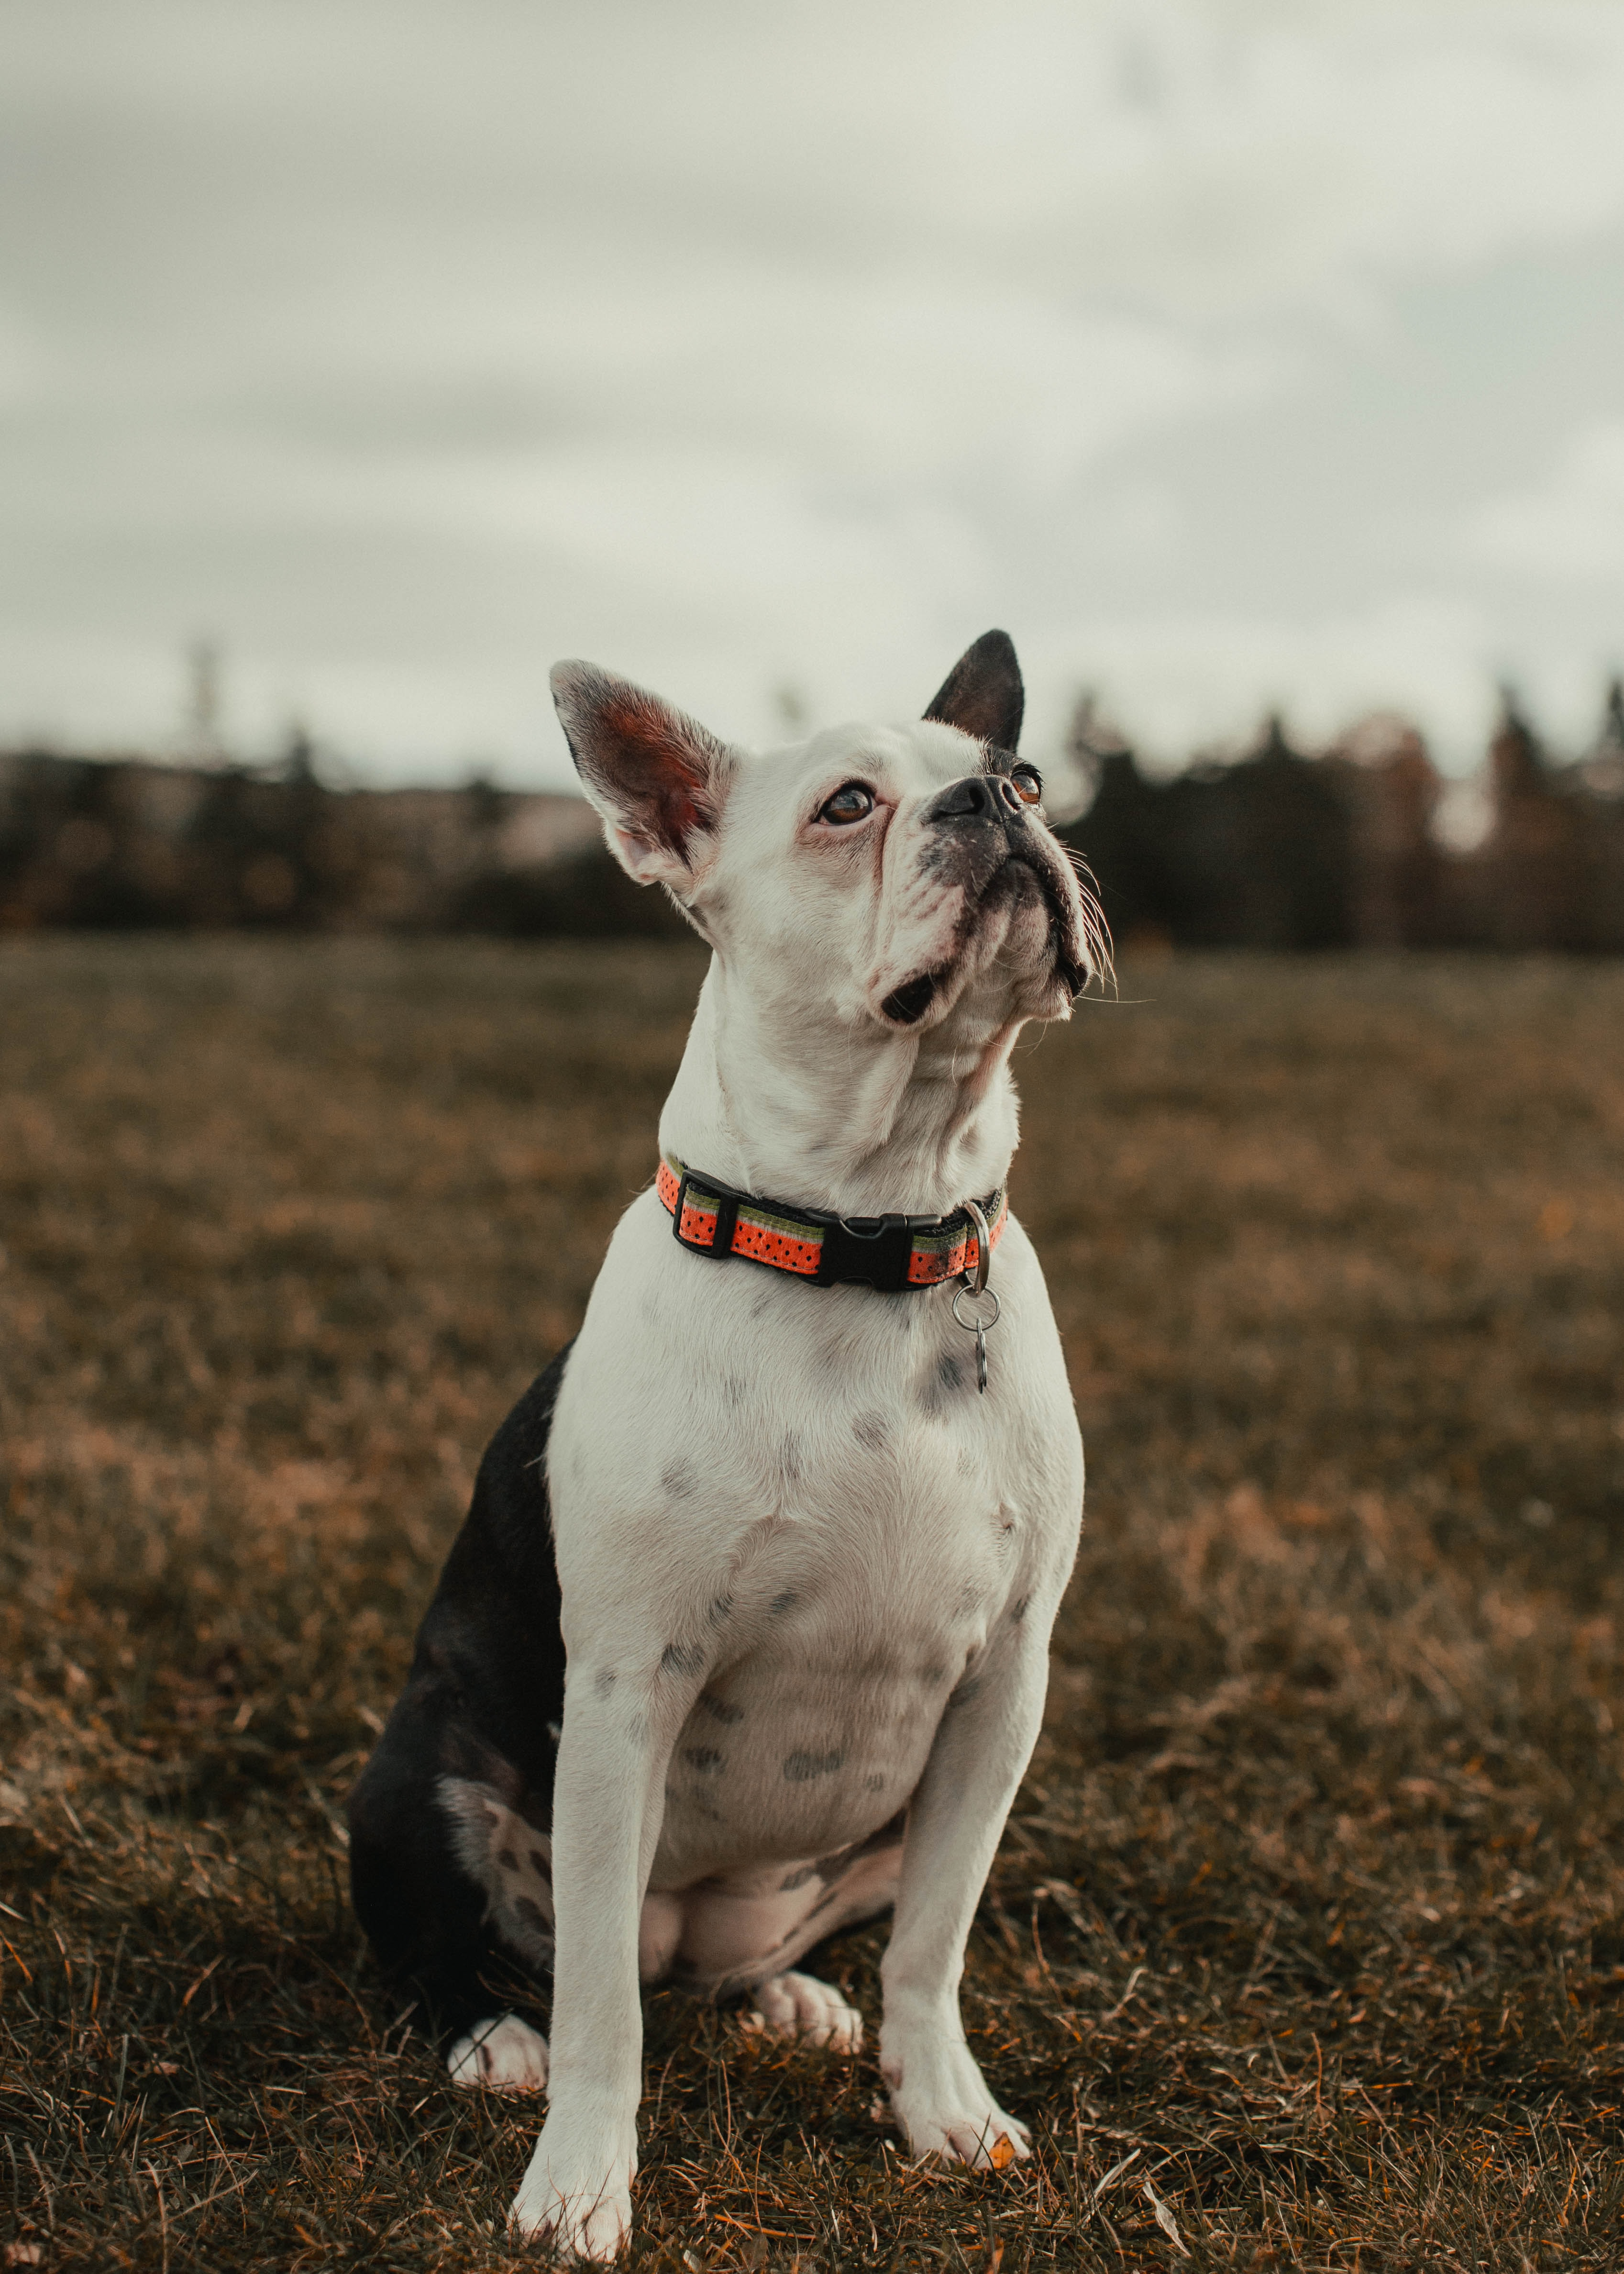 113015 download wallpaper Animals, Bulldog, Dog, Pet, Sight, Opinion screensavers and pictures for free